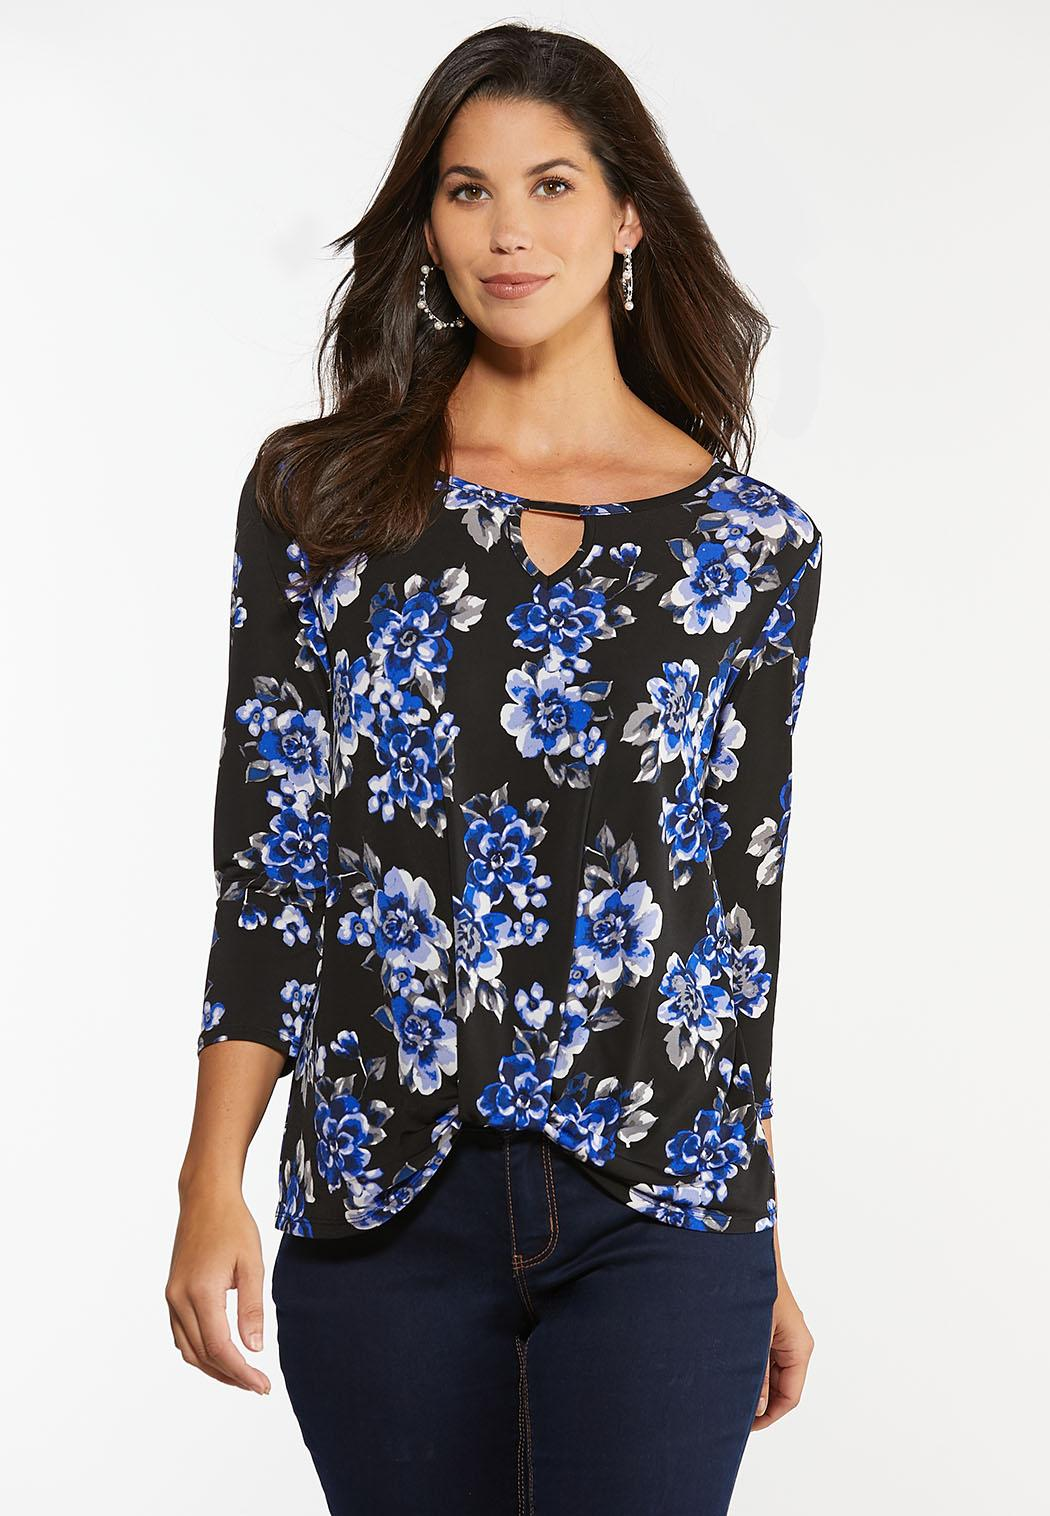 Twisted Blue Blossom Top